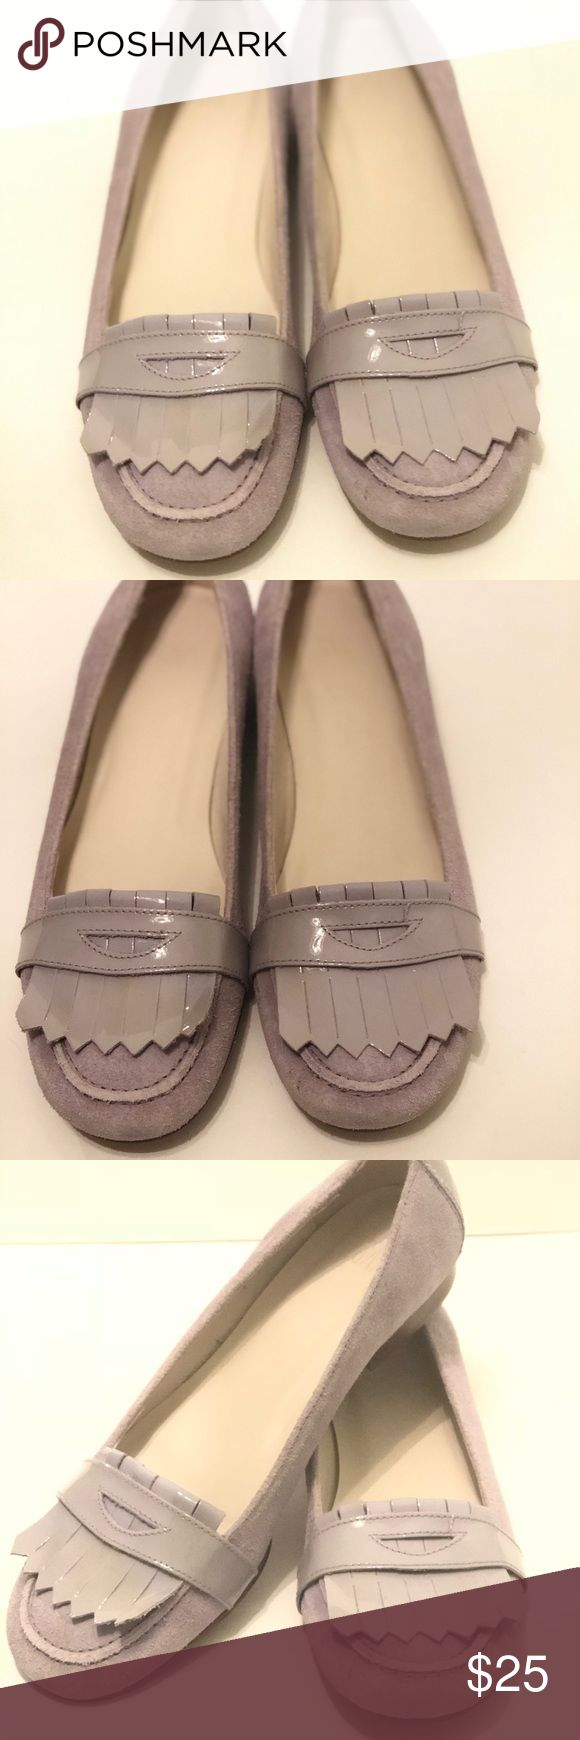 """Lilac Suede and Patent Loafer Flats with Fringe 7 Brand: Gap Style: Loafer Flats with Fringe Material: Suede Leather and Patent Leather  Color: Lilac Size: 7 Like NEW! Worn only once. Super cute flats that will add style and character to any outfit. In lilac with suede / patent contrast. Designed in a feminine penny loafer style with engraved leather wood like soles. Flat, less than 0.5"""" heels. All leather construction. Classic quality is written all over these flats! GAP Shoes Flats…"""